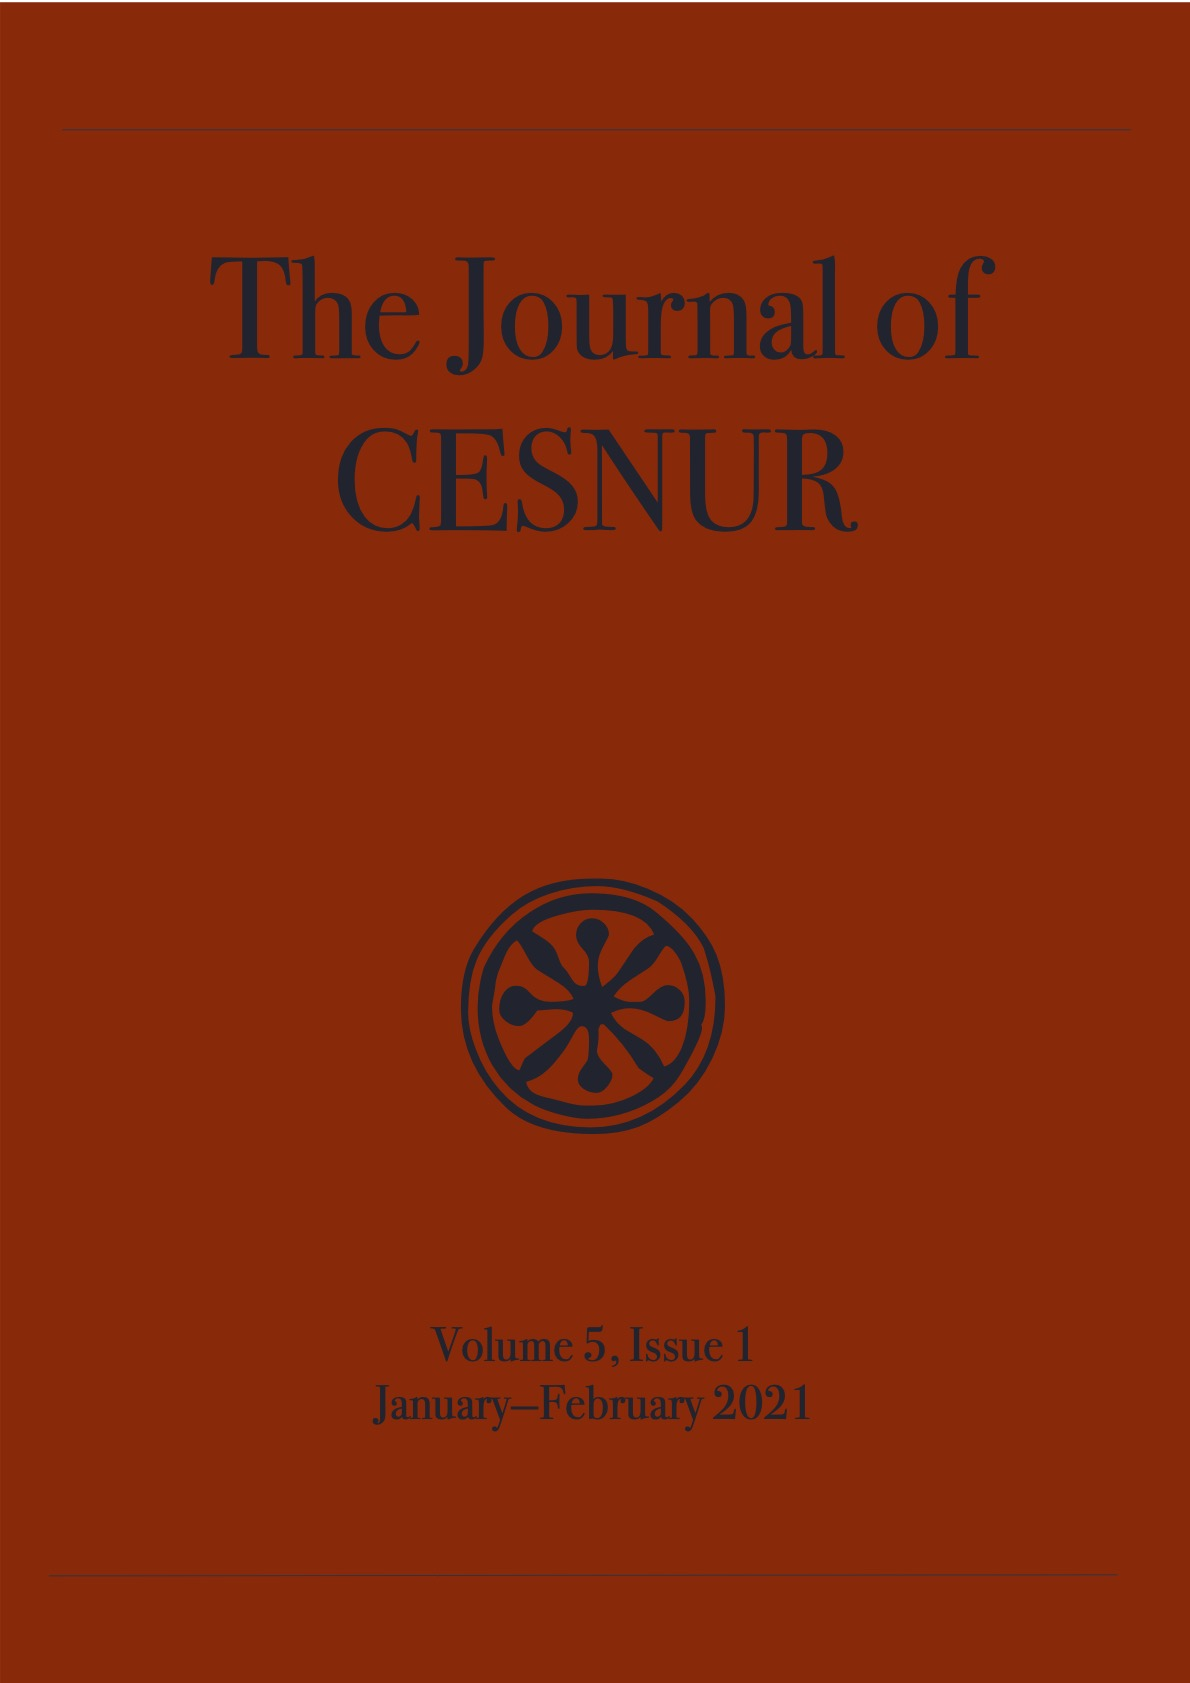 The Journal of Cesnur Volume 5 Issue 1 cover